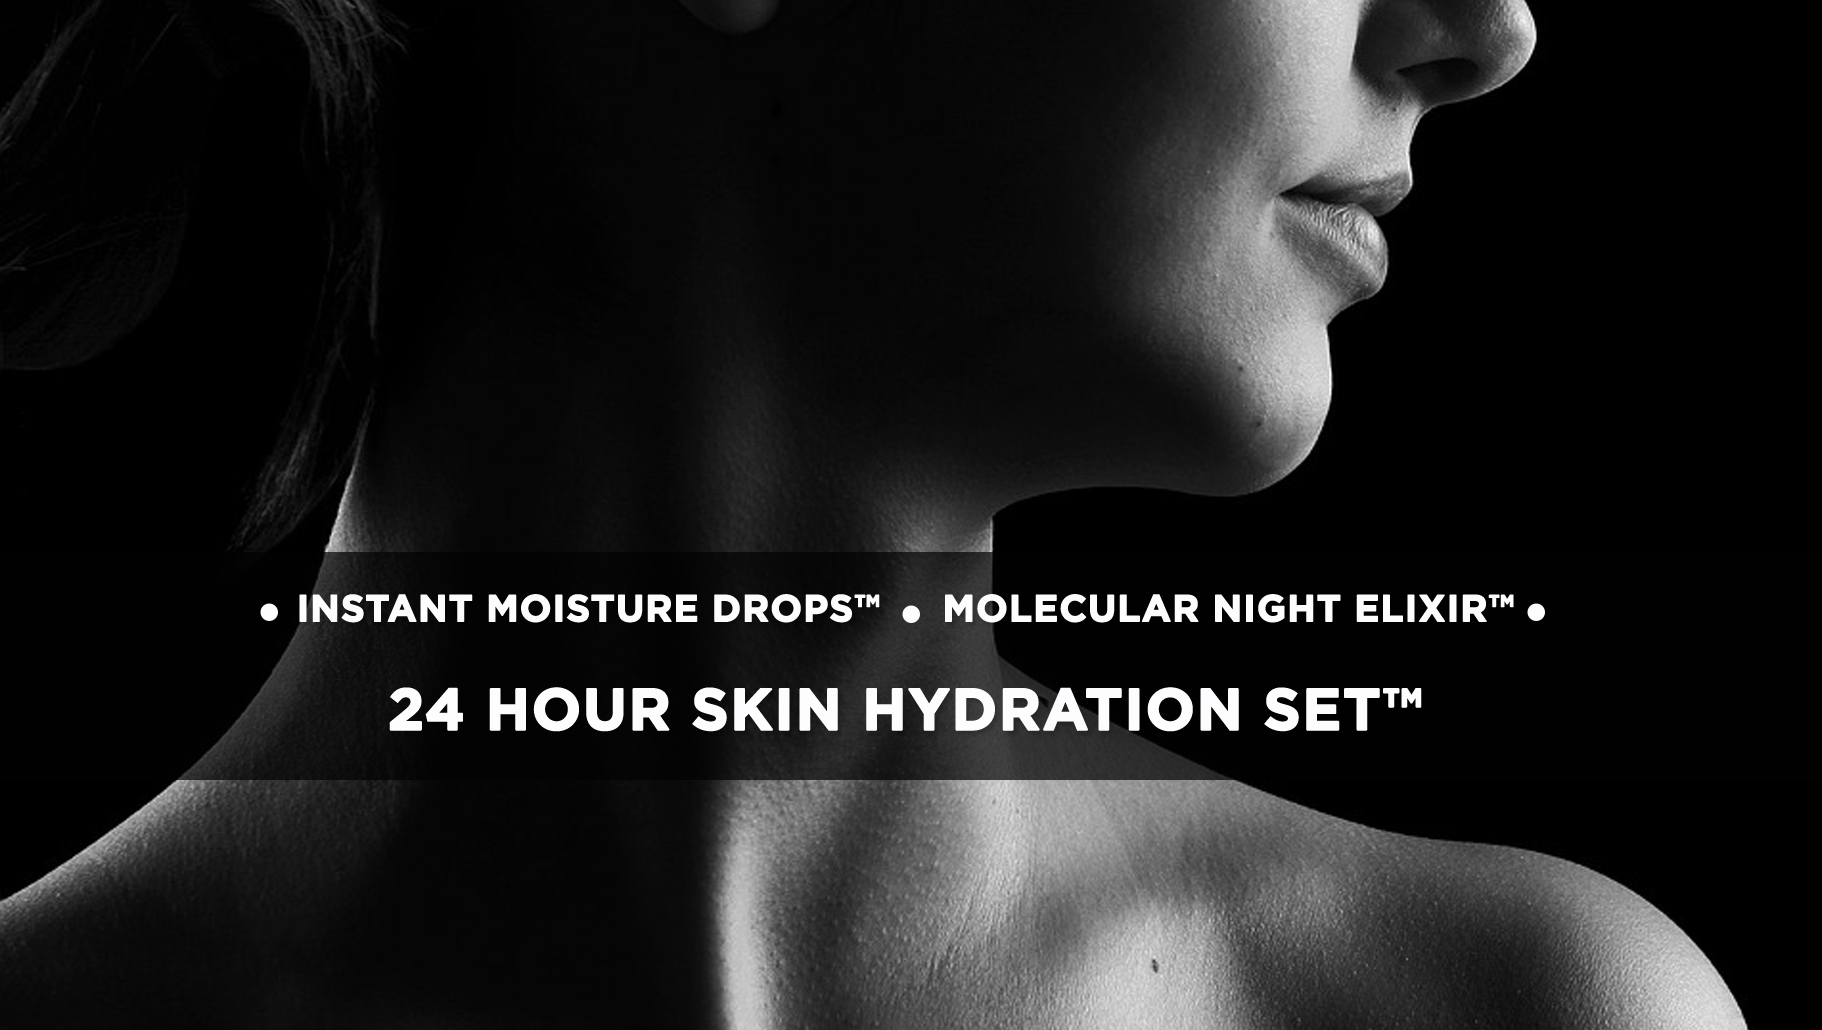 24 HOUR SKIN HYDRATION SET™